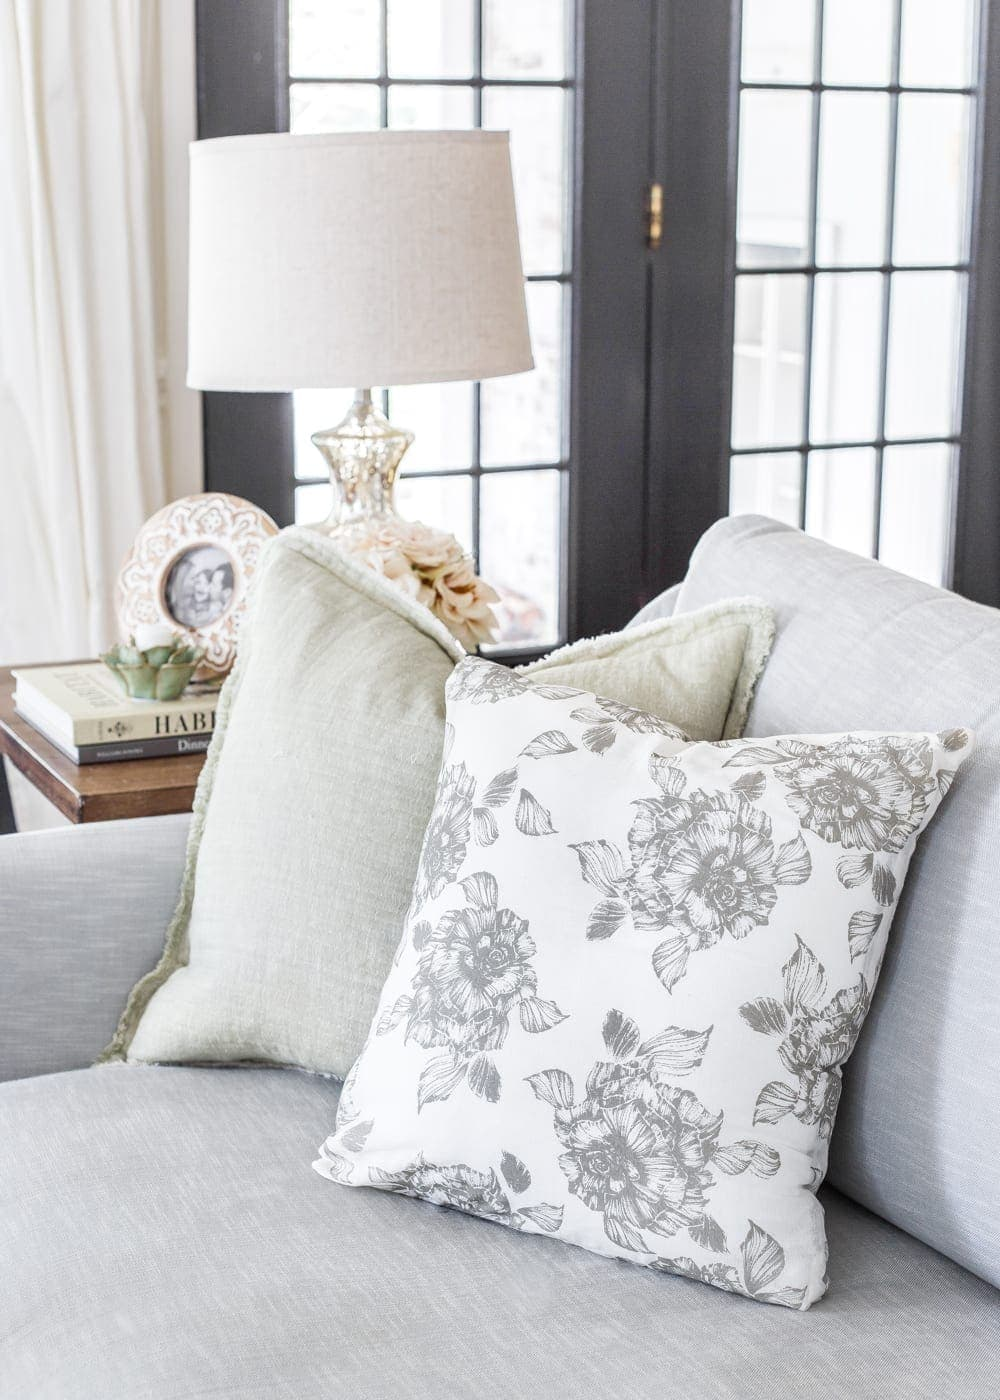 3 items you can repurpose into DIY no-sew throw pillows   How to make a throw pillow from napkins.